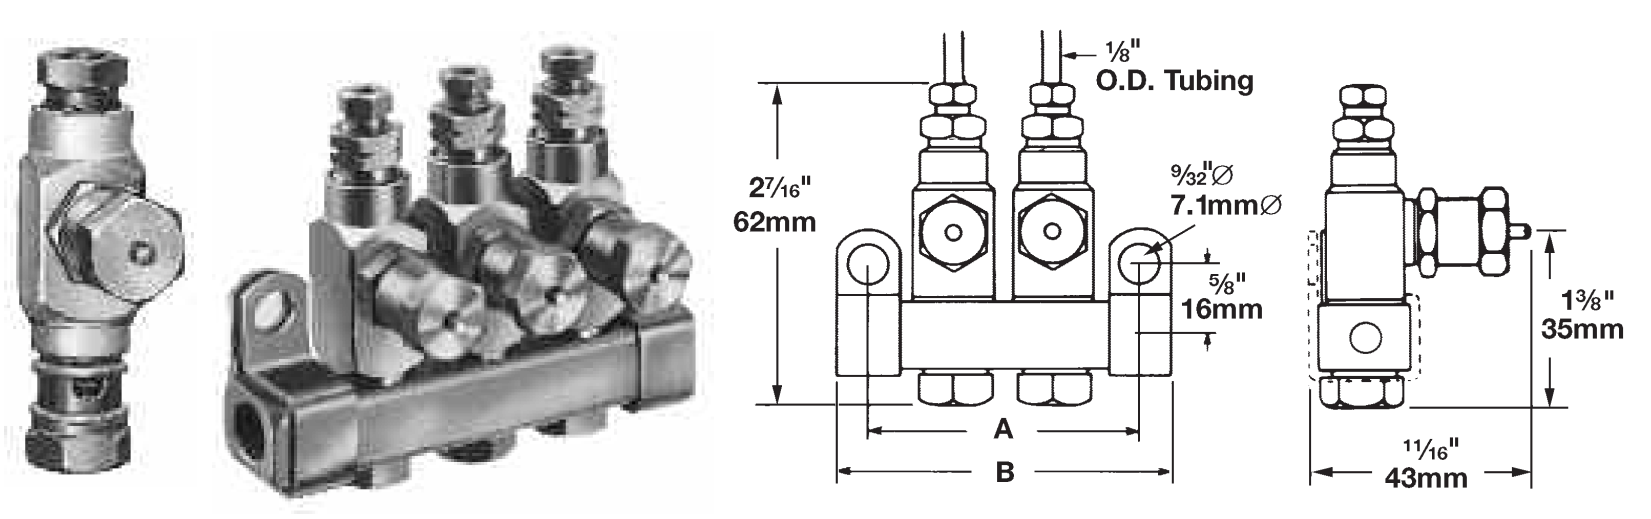 Centromatic Injector SL 33